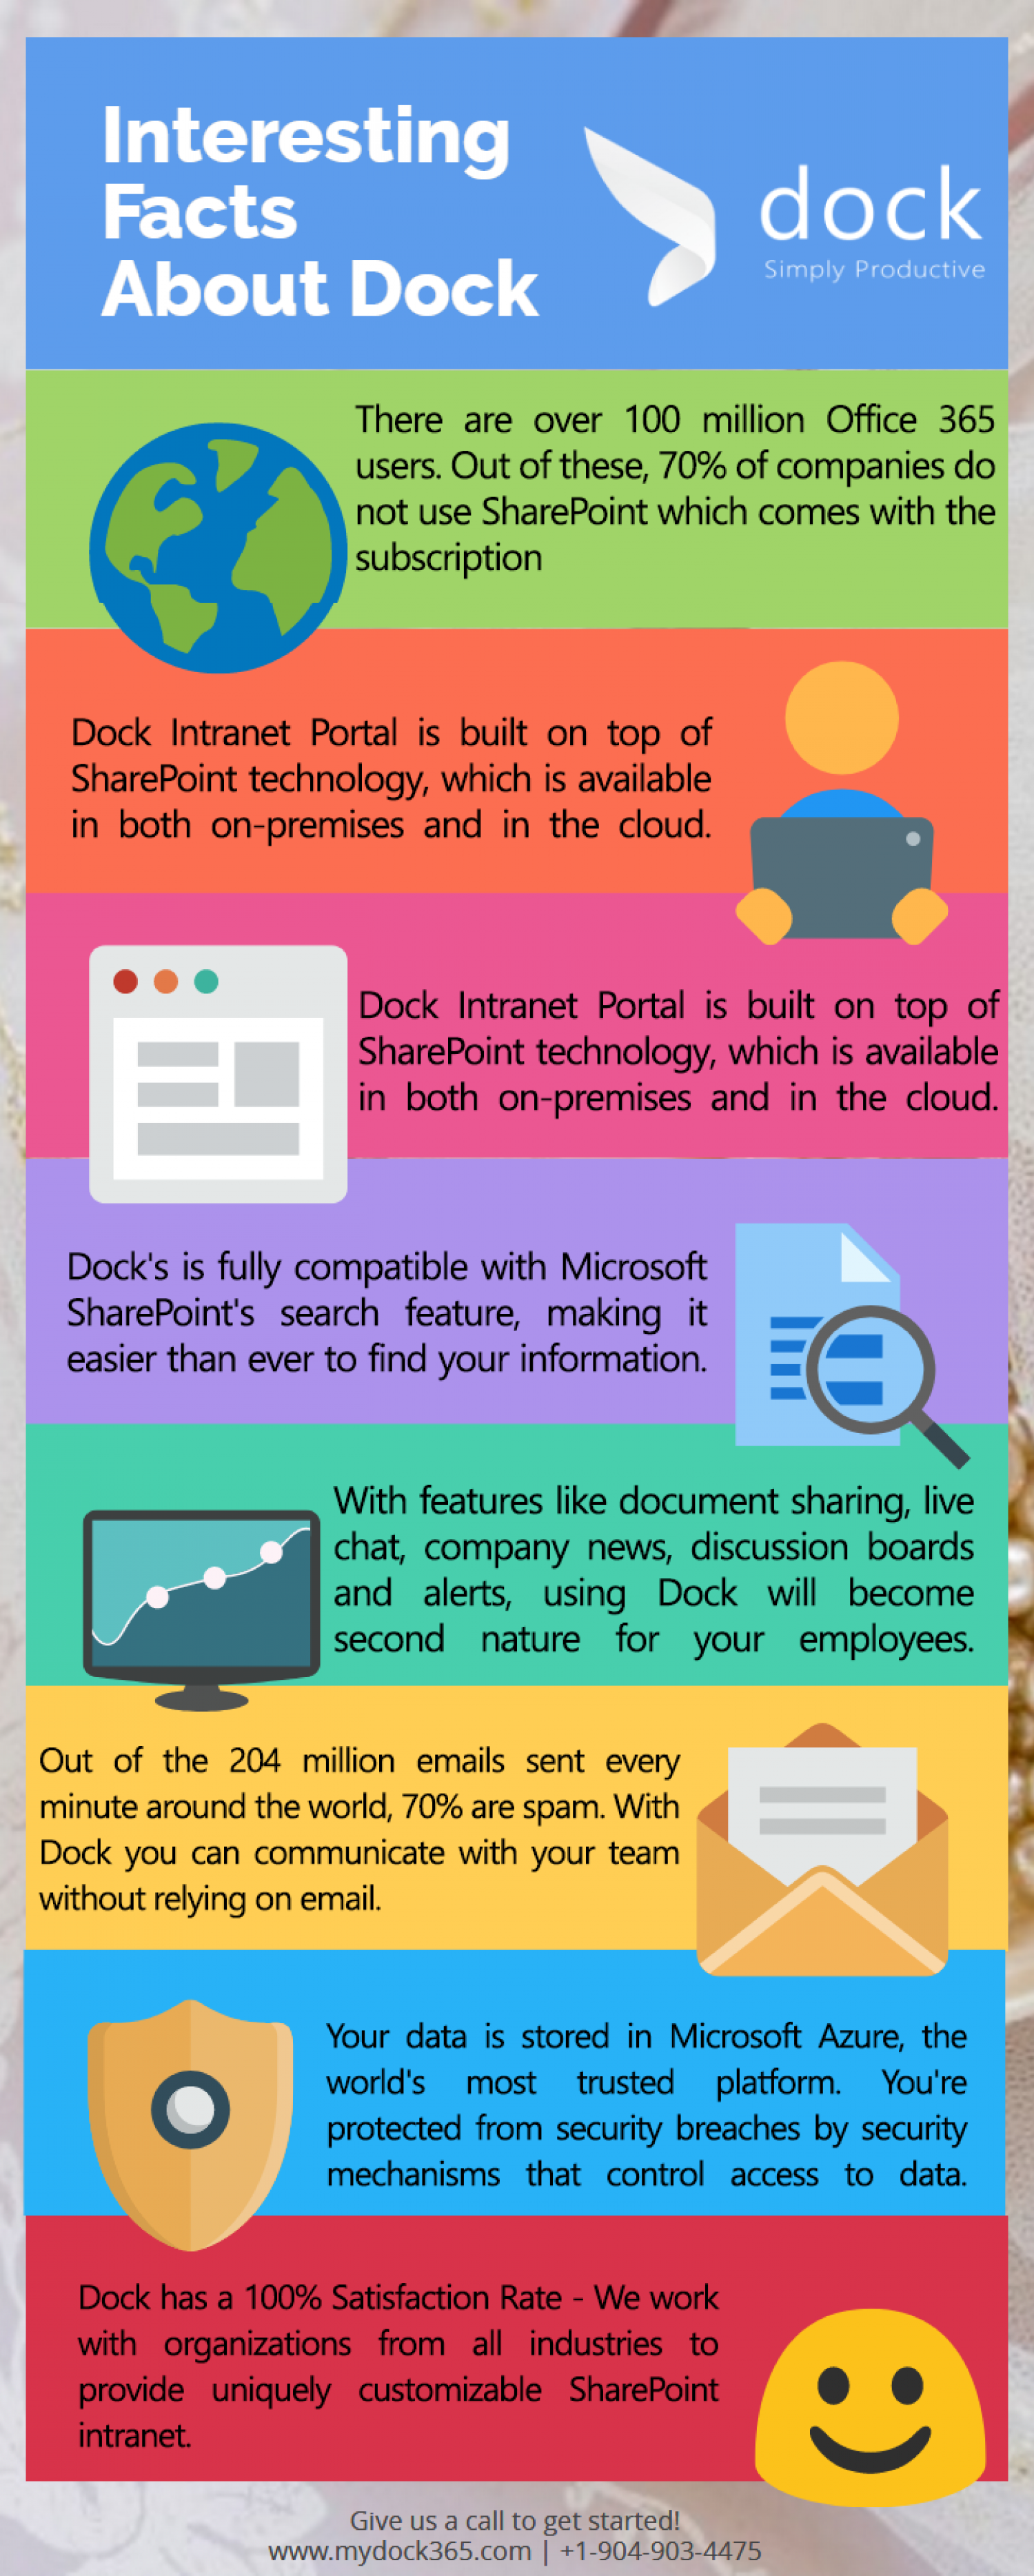 Interesting Facts about Dock Intranet Portal Infographic